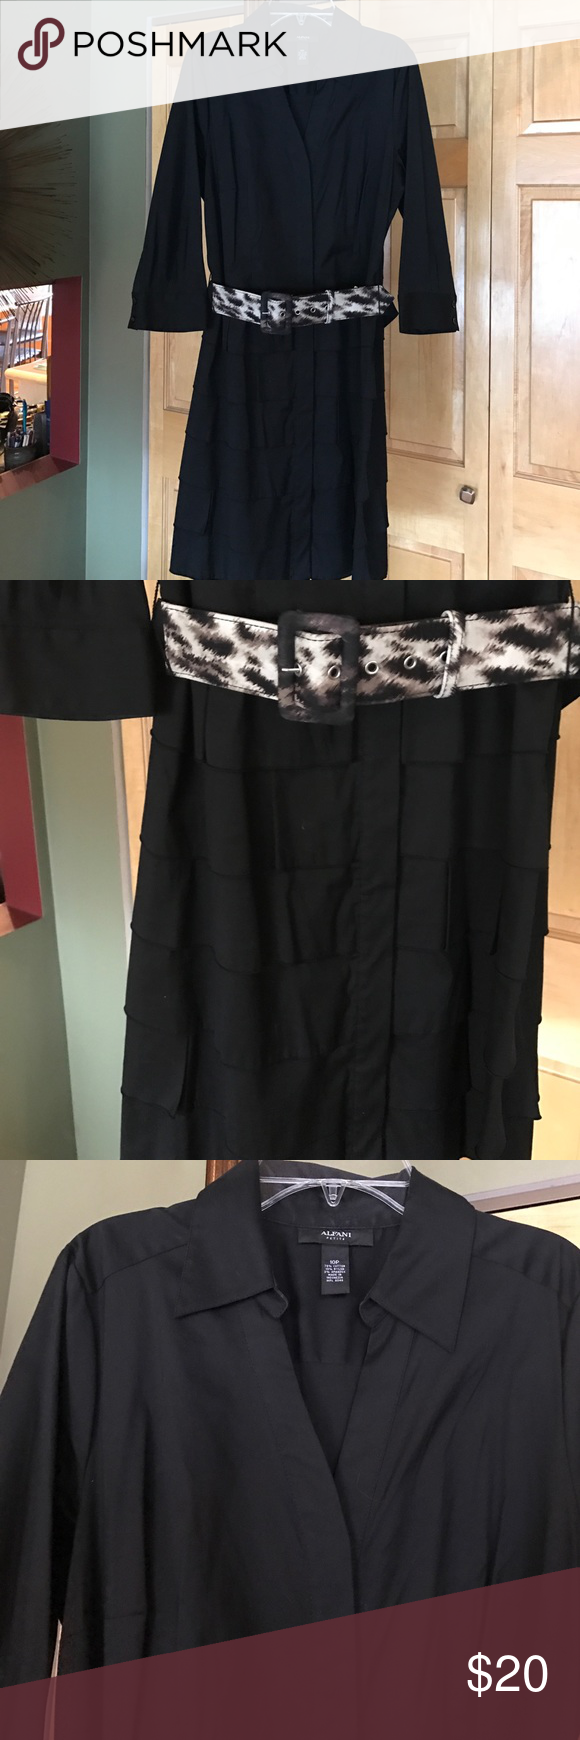 Black V Neck Dress with Belt Really cute black v neck dress with animal print belt. Bottom of the dress is layered ruffles. 3/4 length buttoned sleeves. Material is cotton nylon and spandex. Alfani Dresses